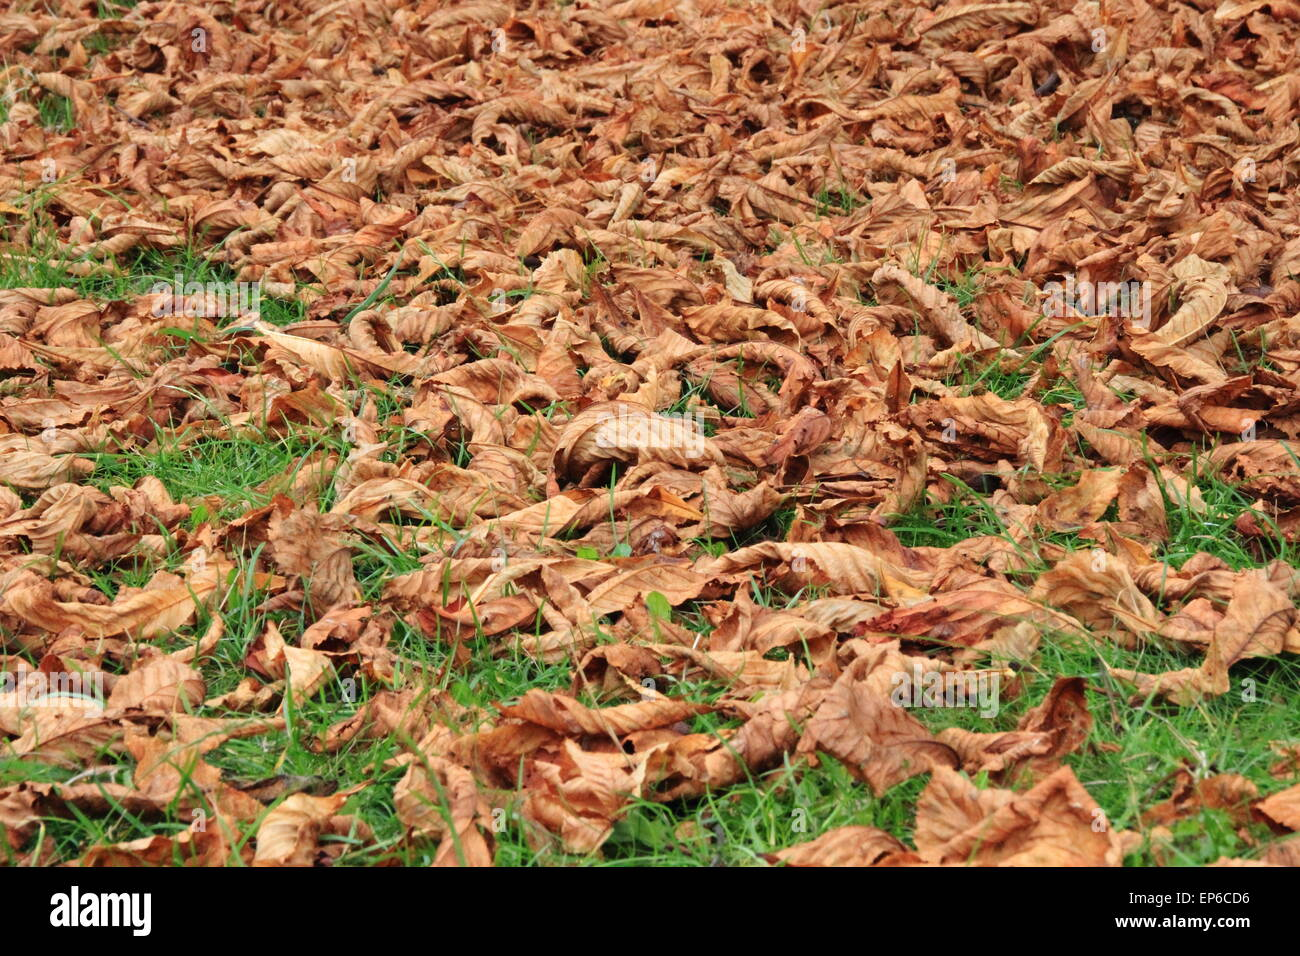 Perspective of brown dead autumn leaves on green grass - Stock Image